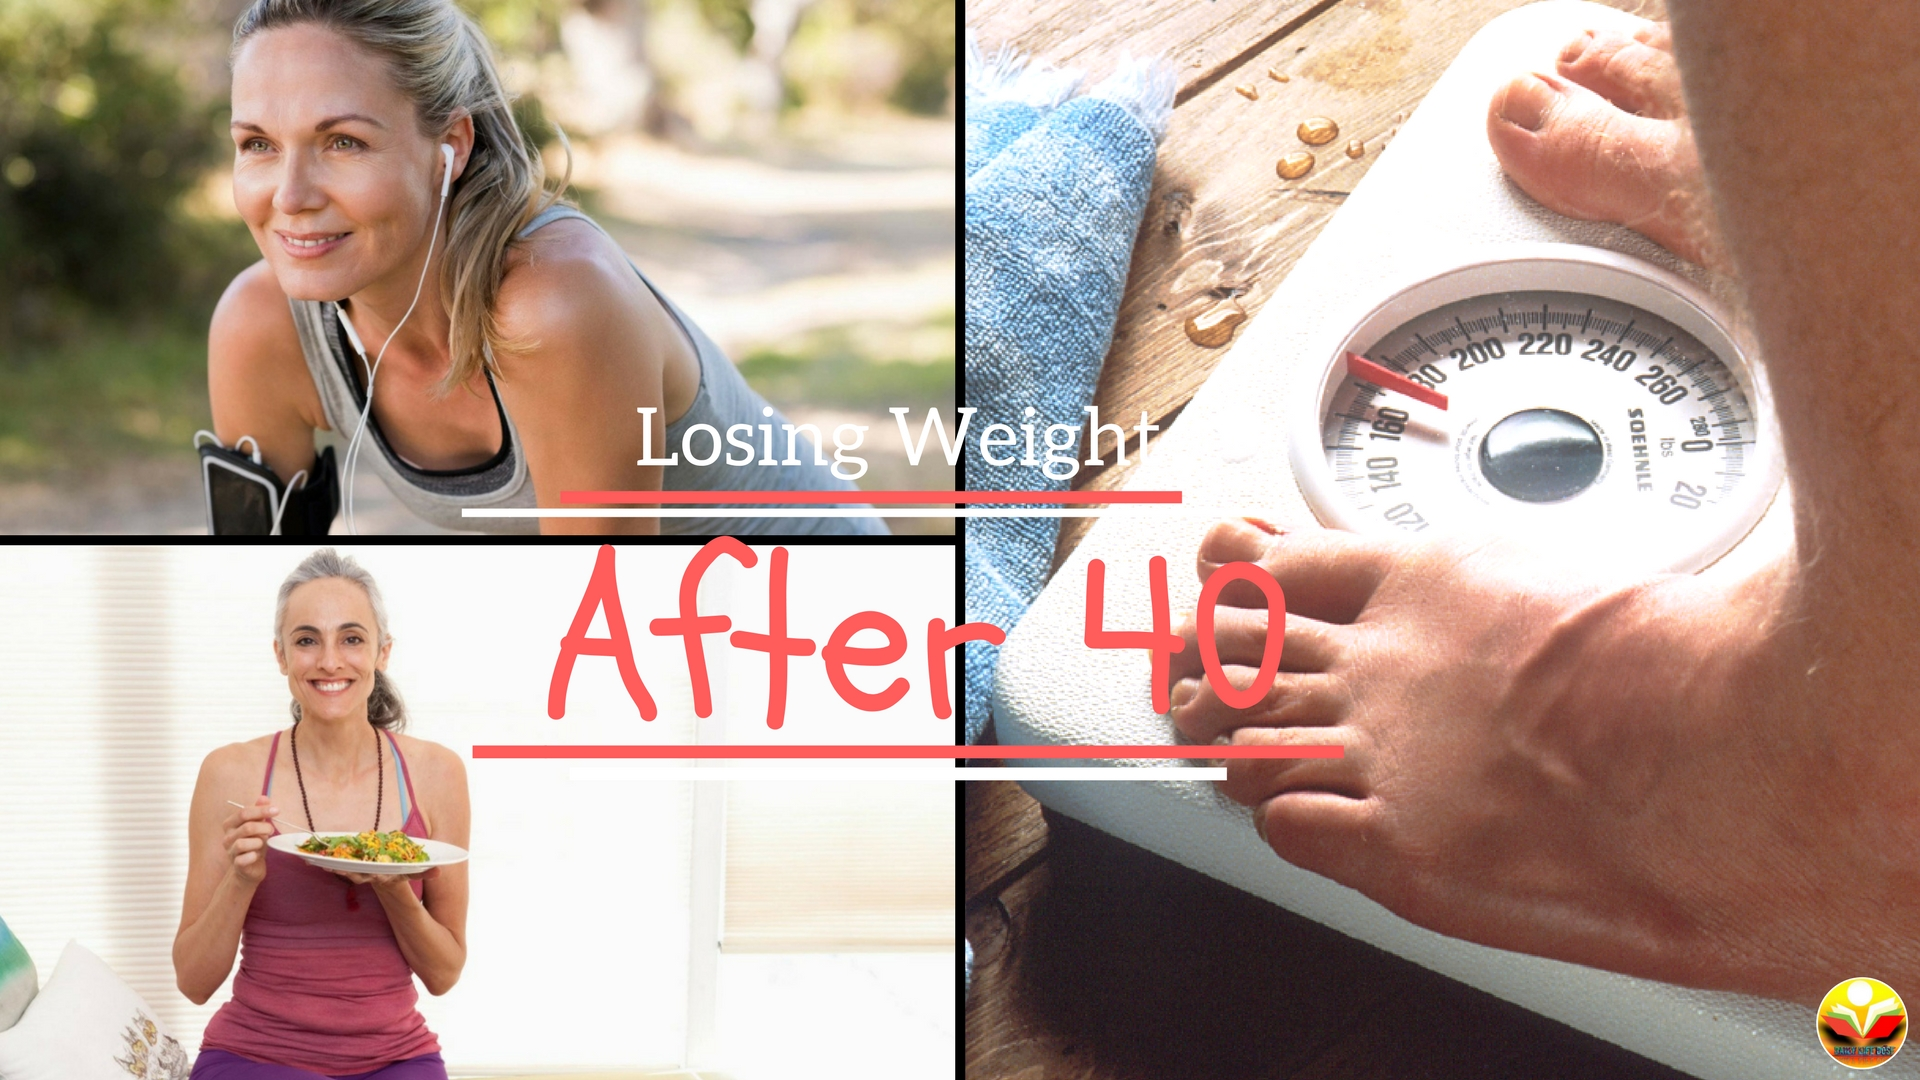 is it possible to lose weight over 40